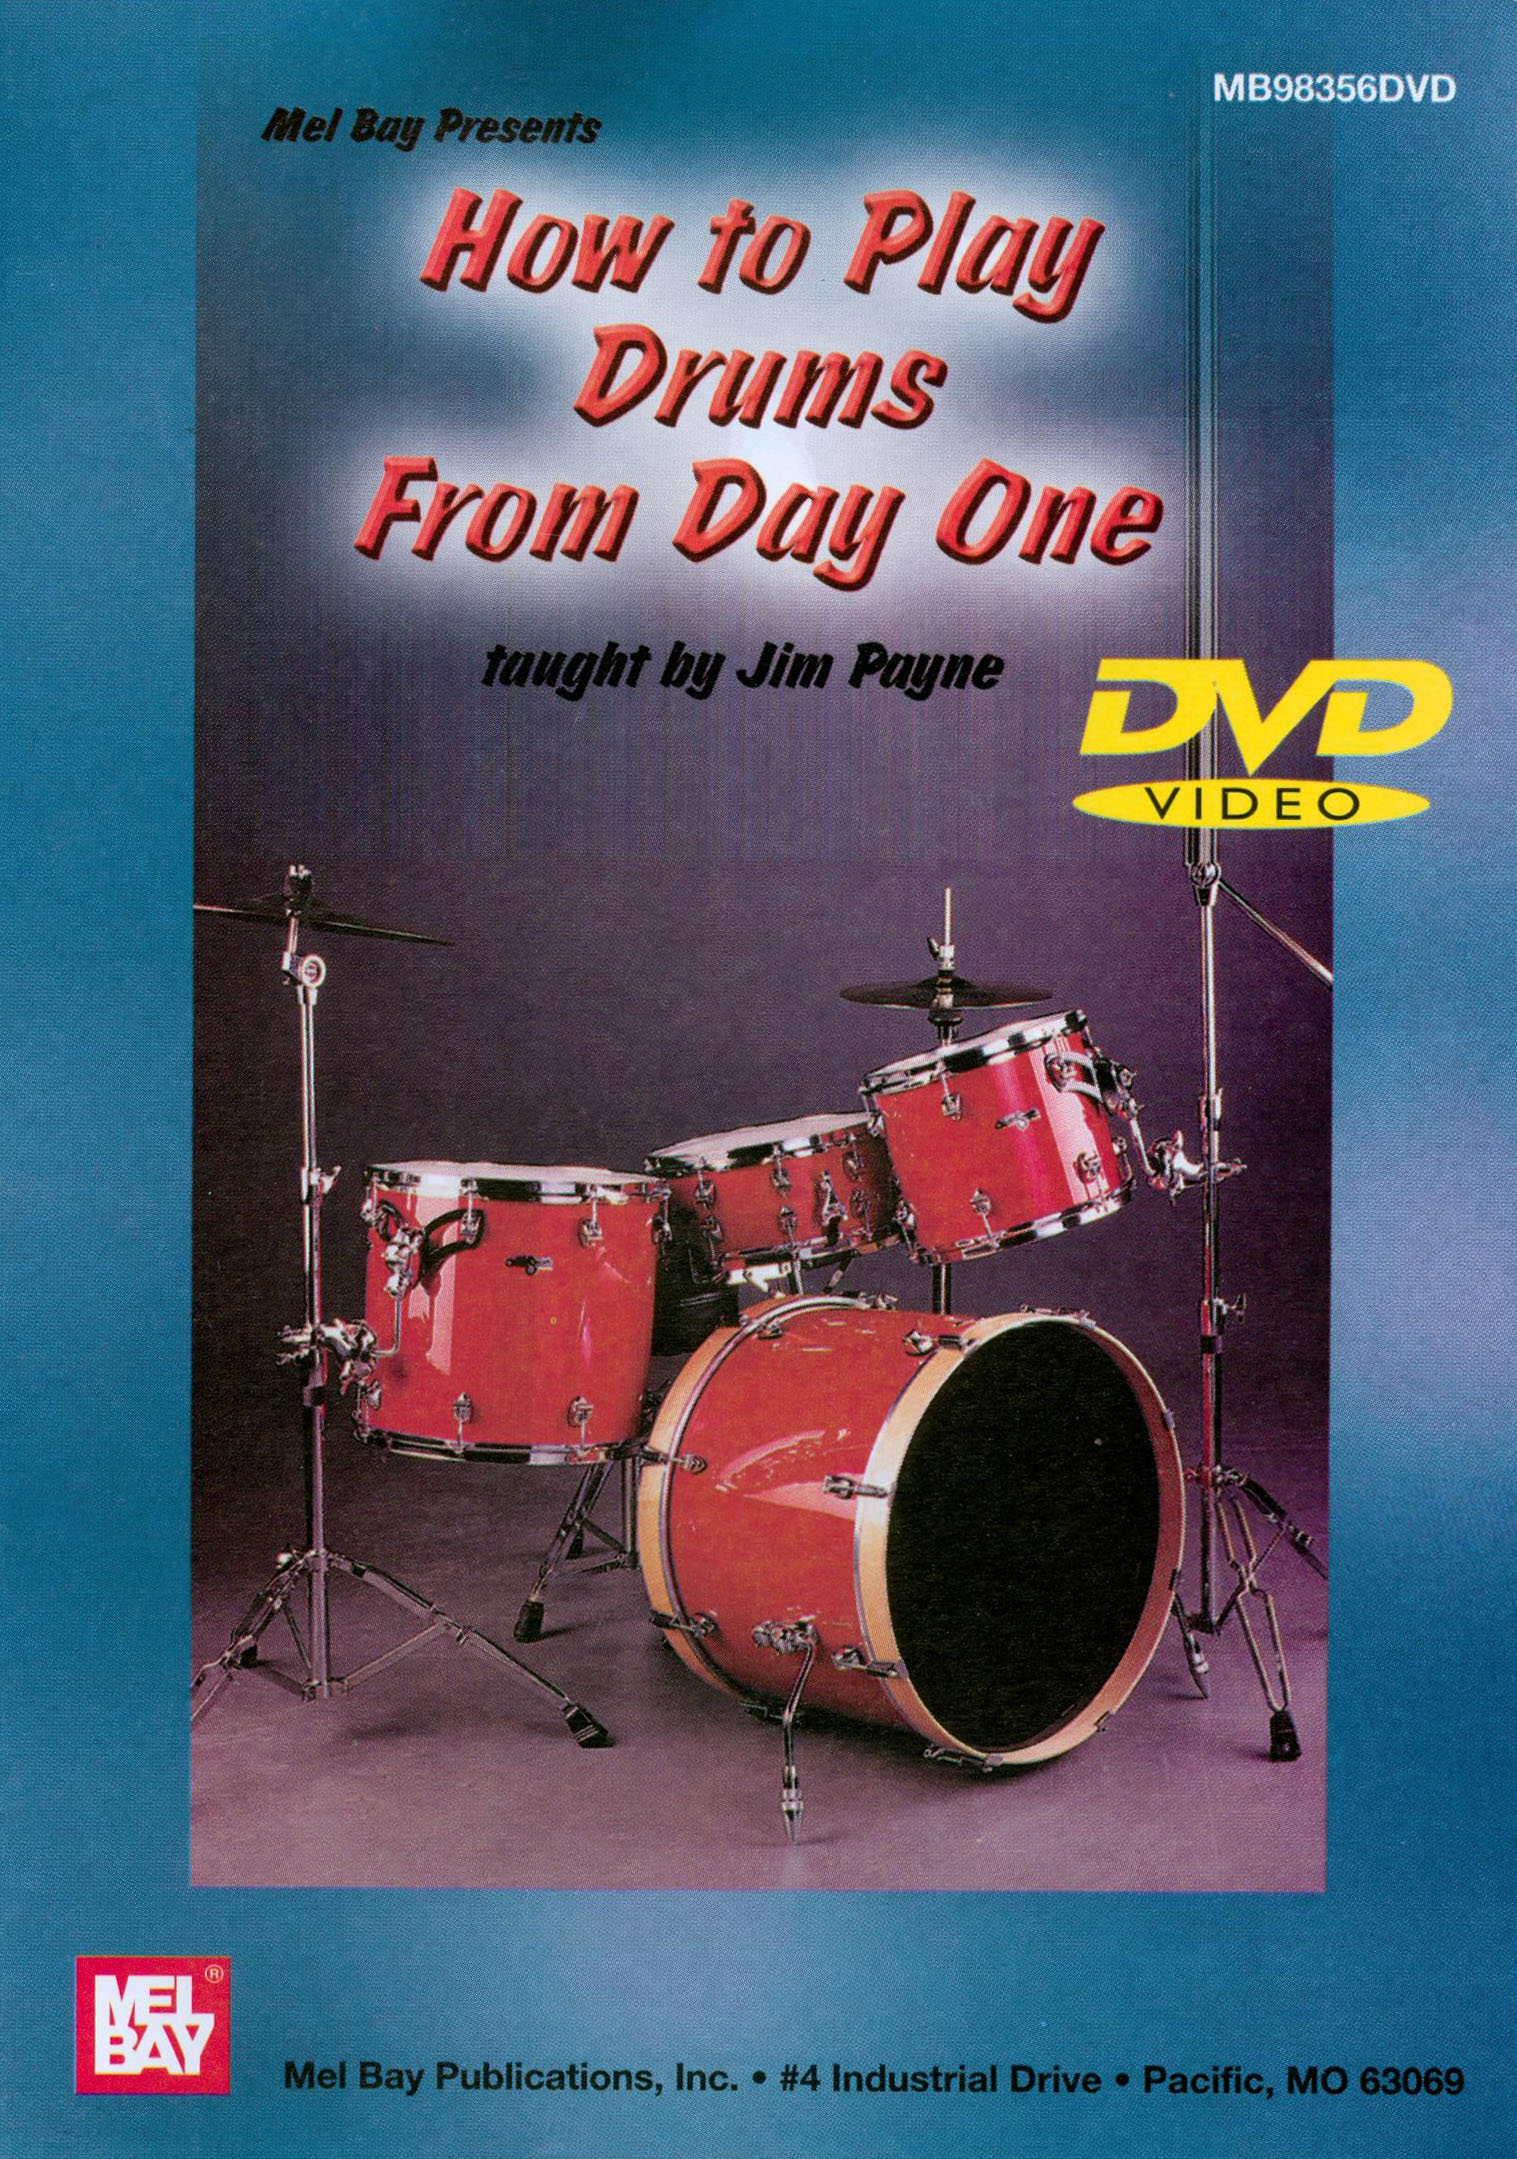 Jim Payne: How to Play Drums, from Day One